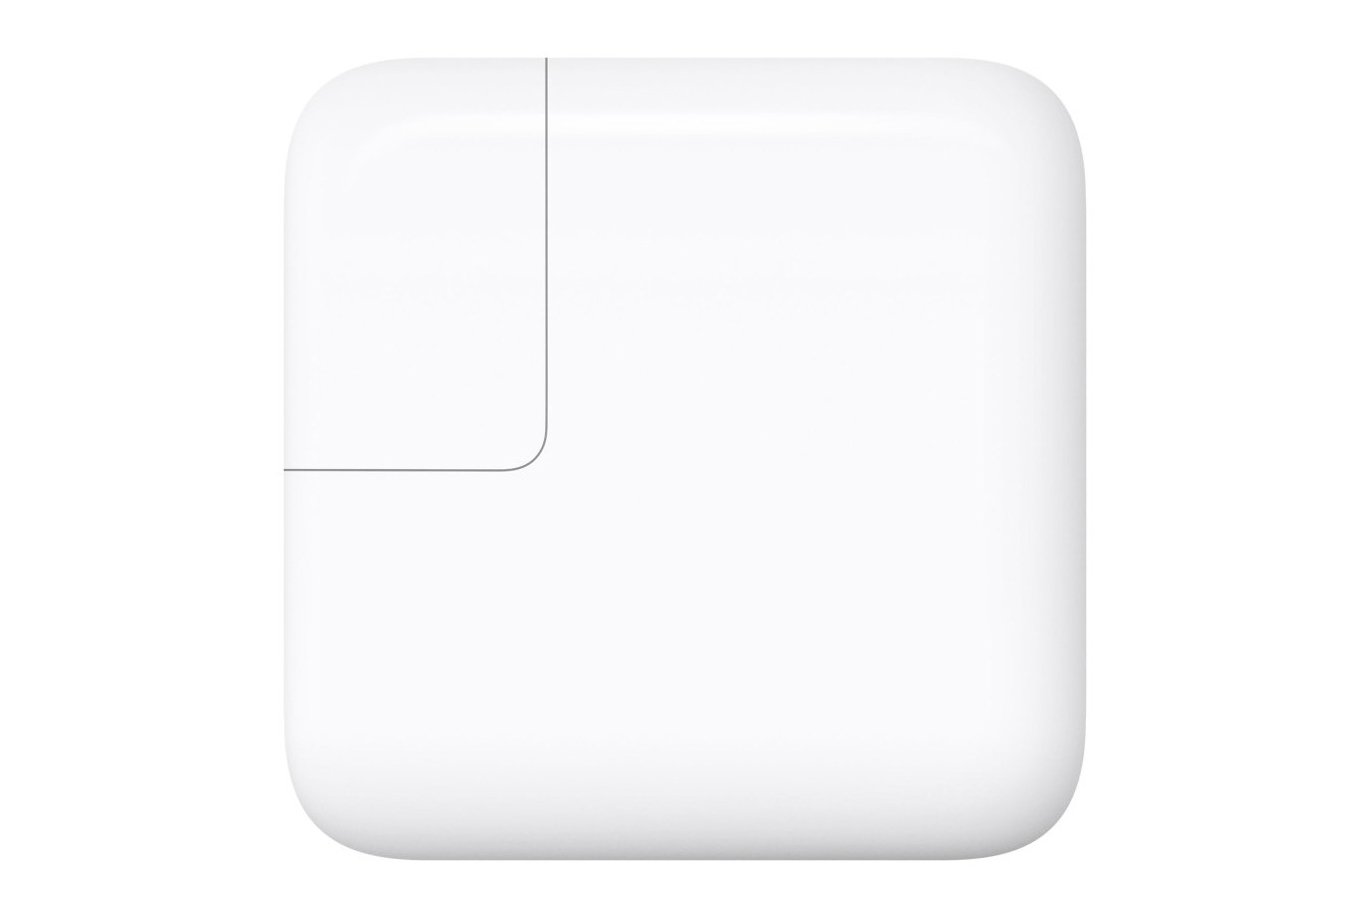 Apple USB-C Power Adapter 29W MJ262LL/A